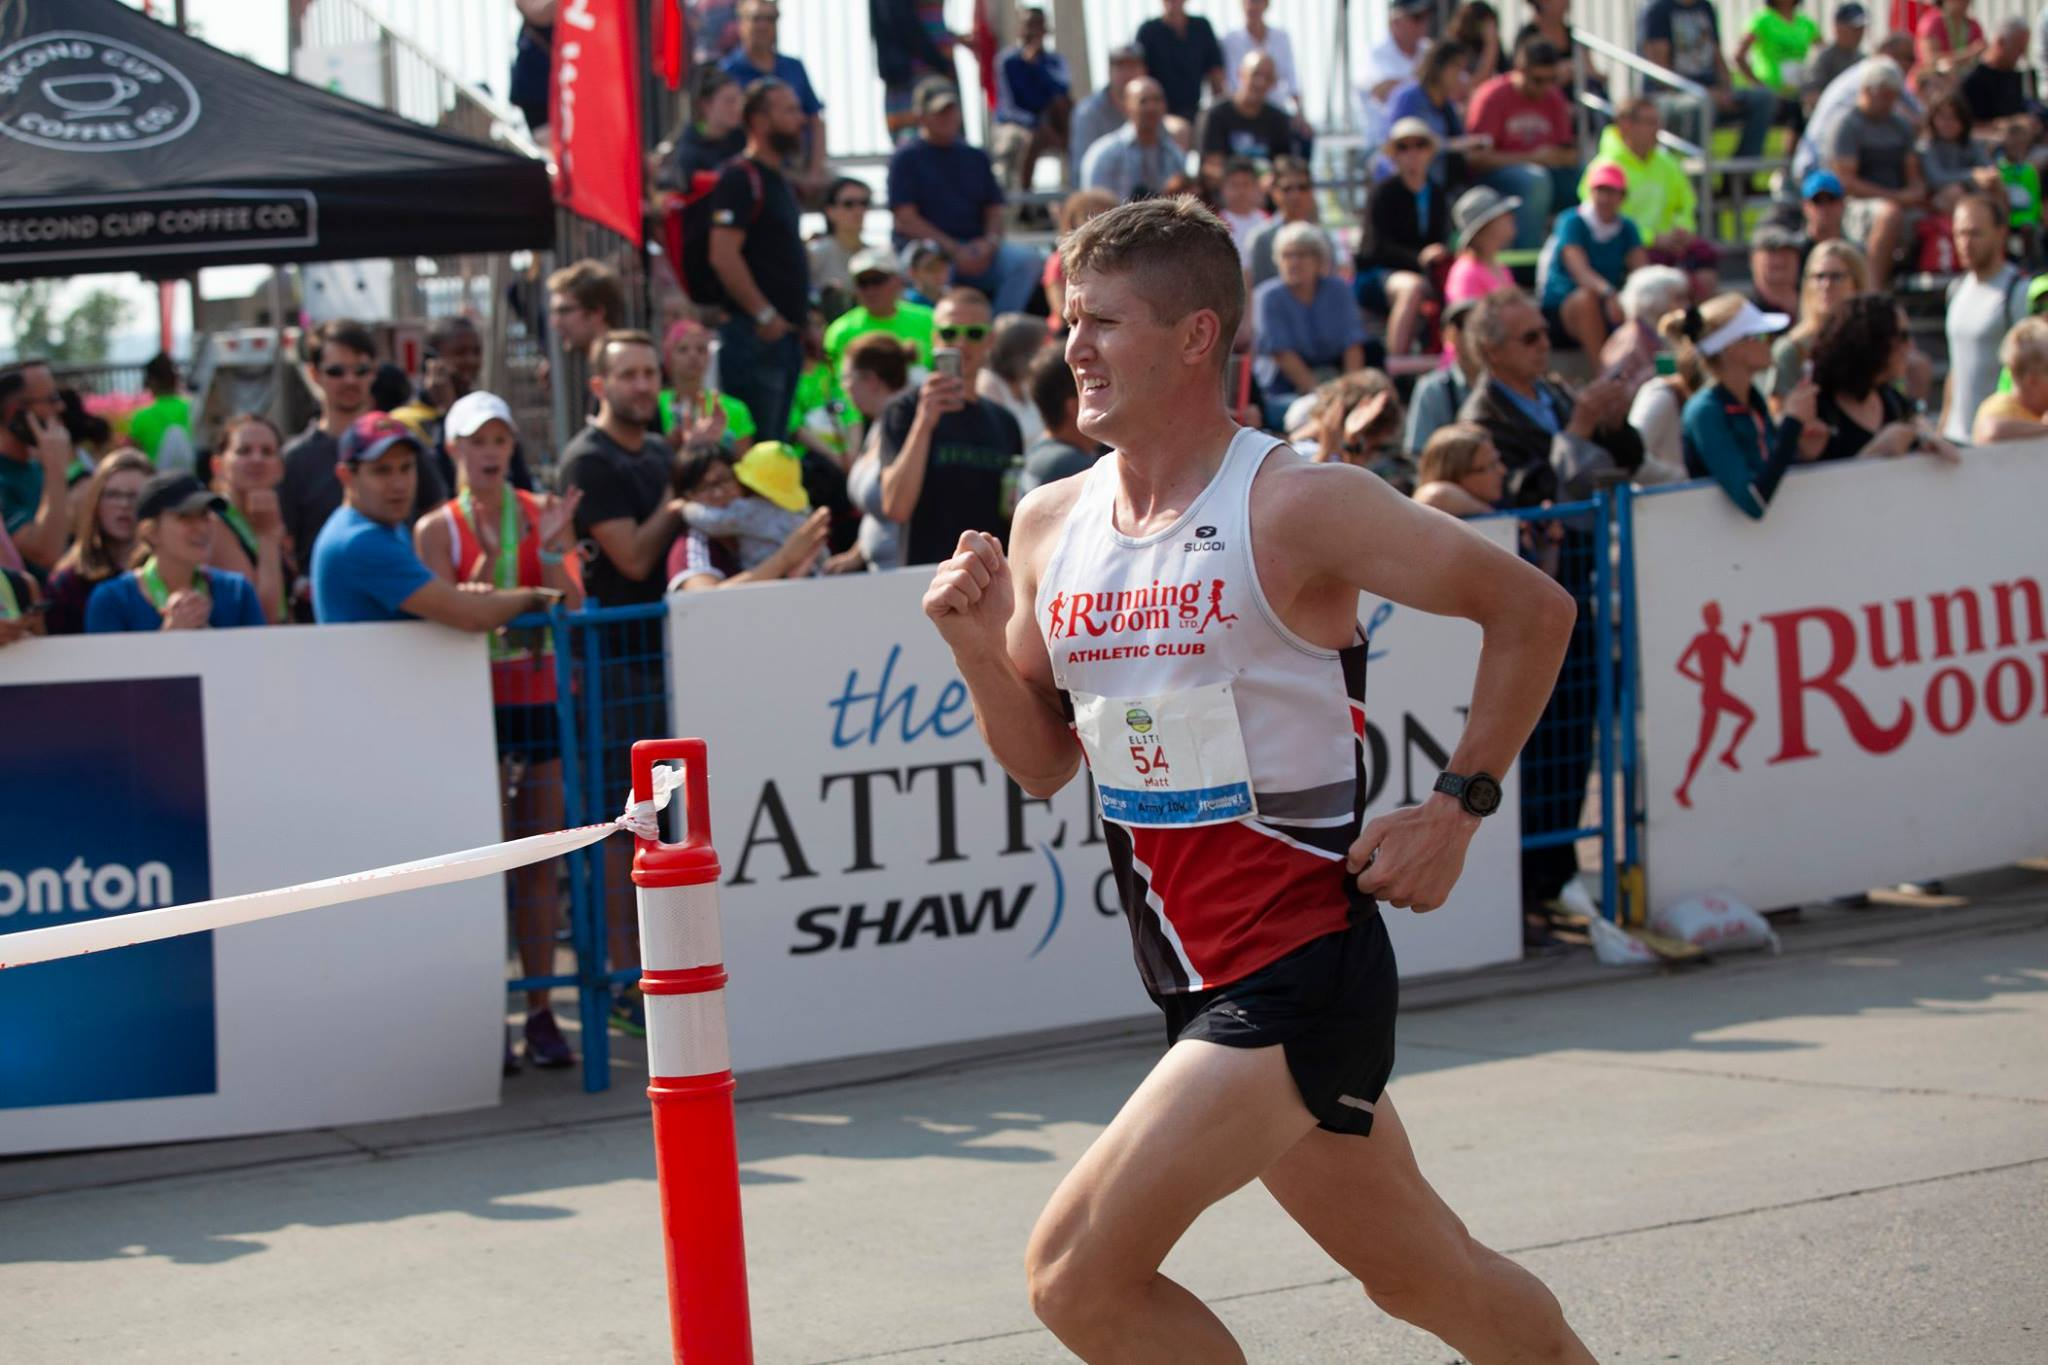 Matt Setlack at Edmonton Army 10k Aug 2018.jpg